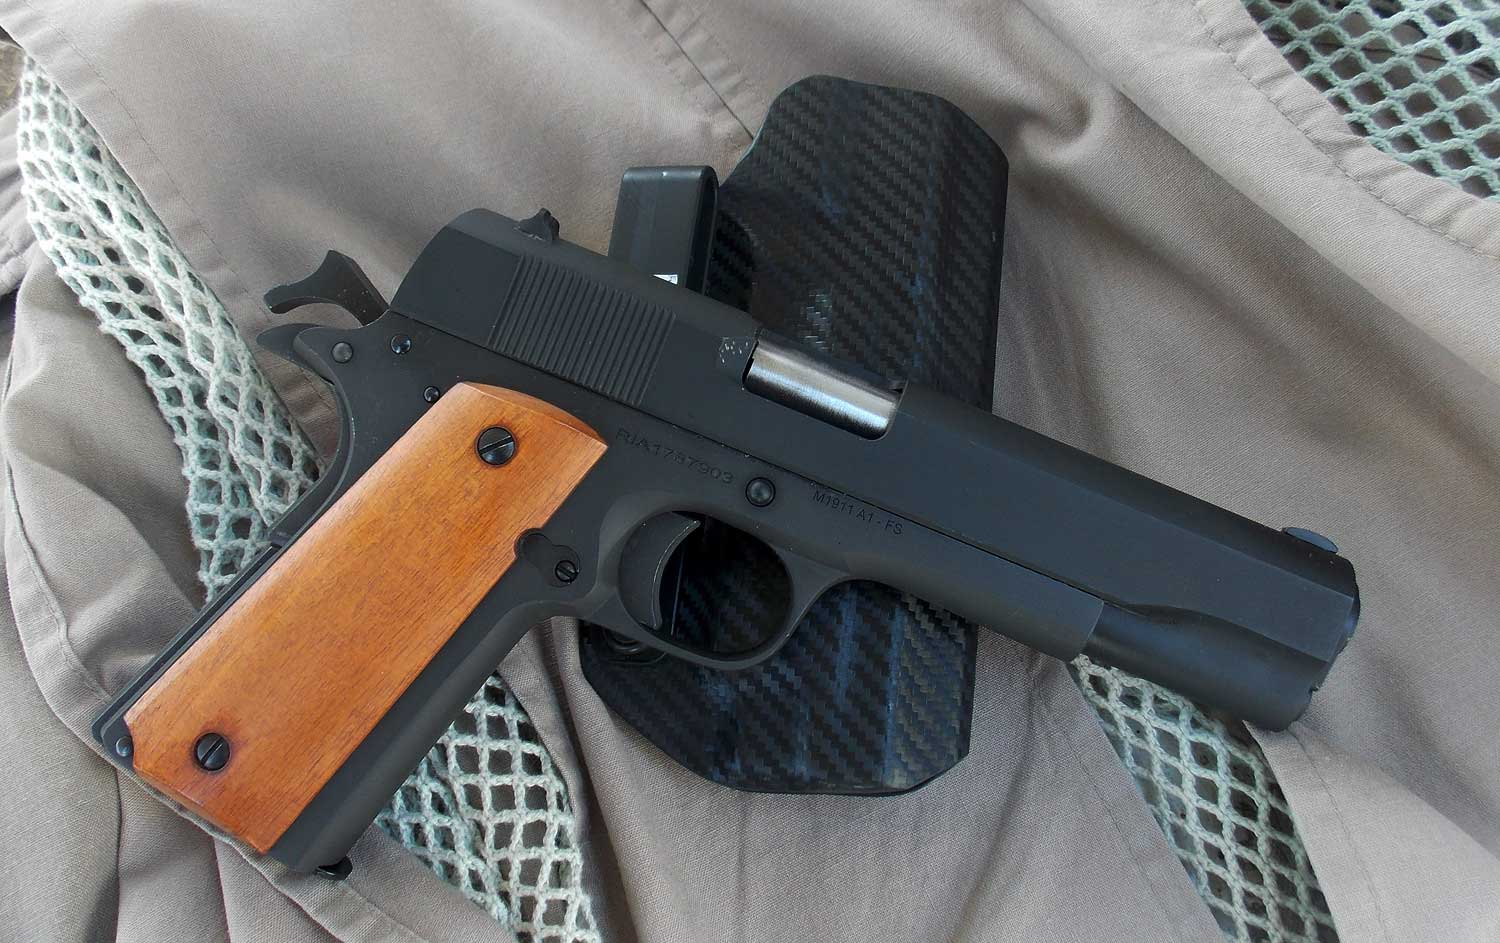 1911 handgun chambered in .38 Super with a Kydex holser